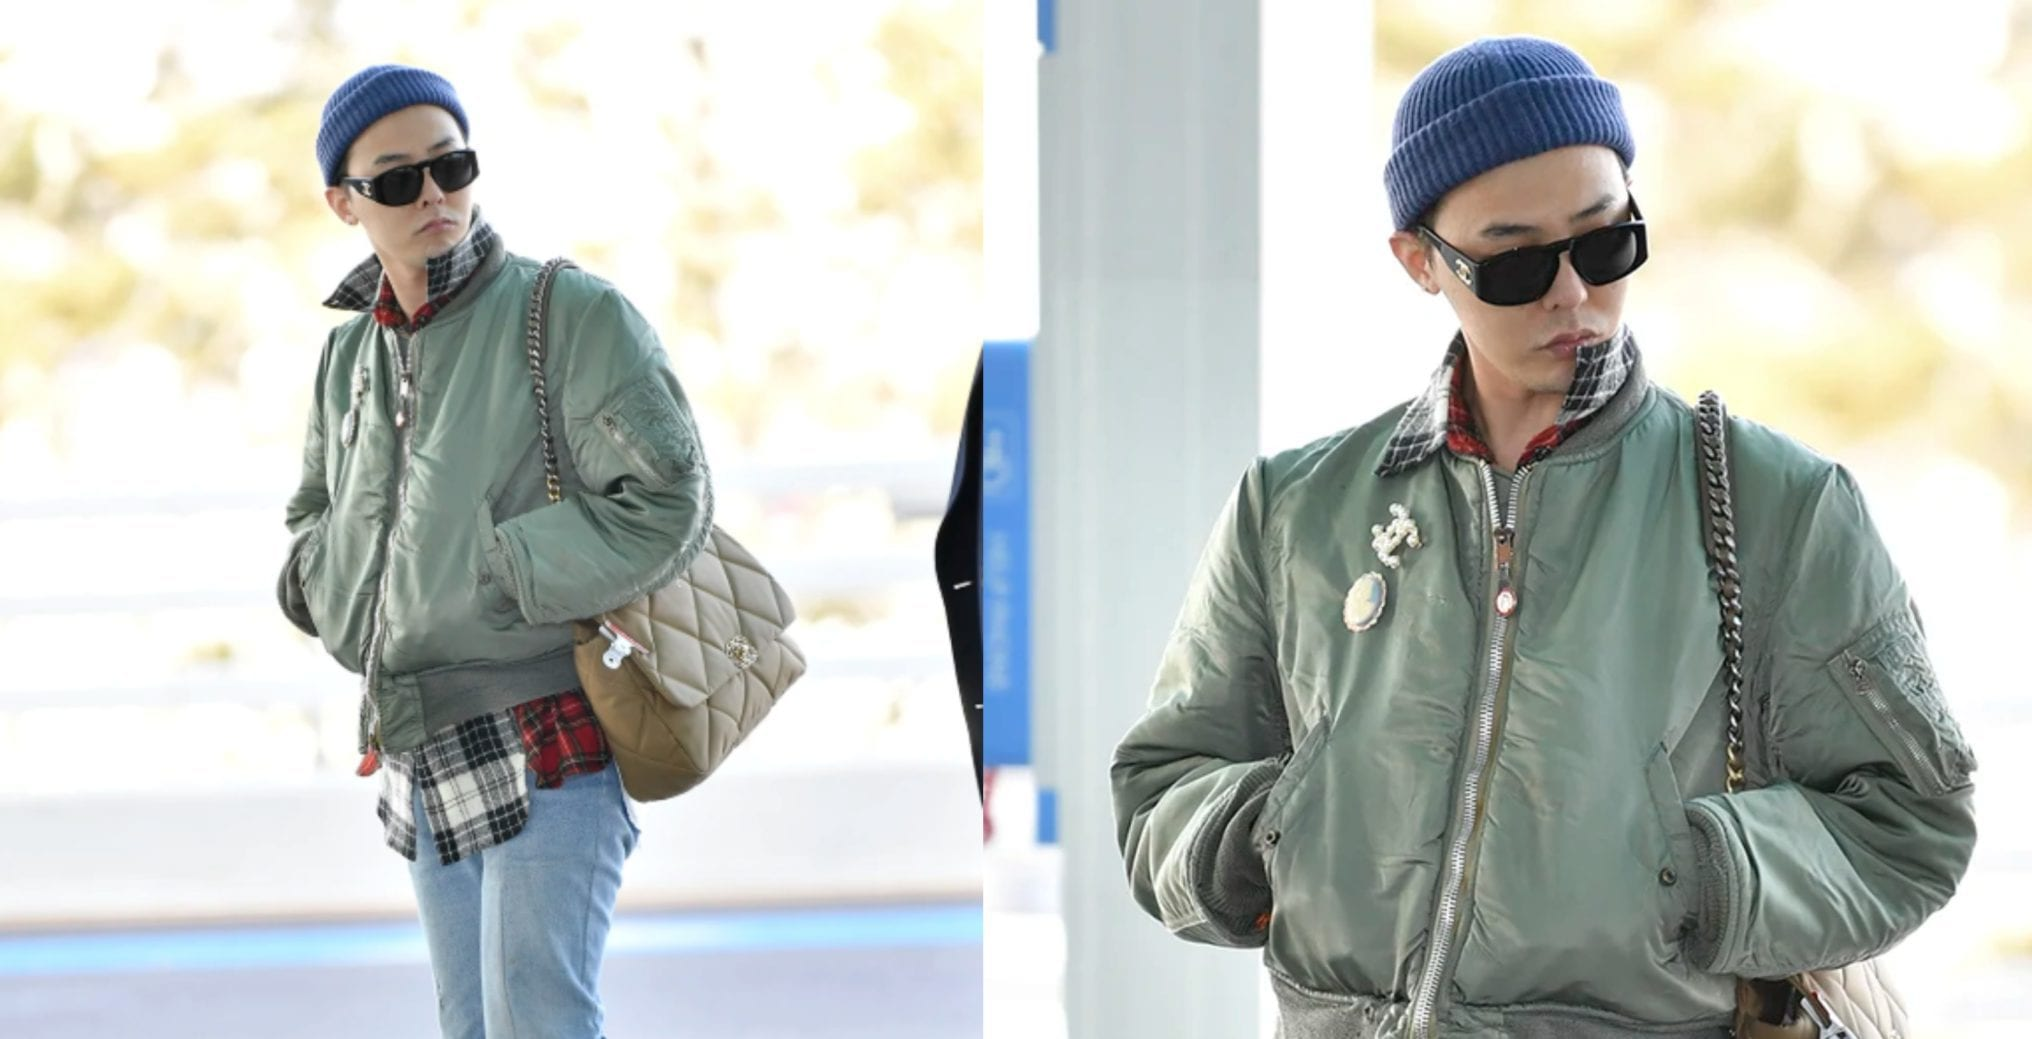 GET THE LOOK (FOR LESS!): G-Dragon's January 2020 Airport Fashion